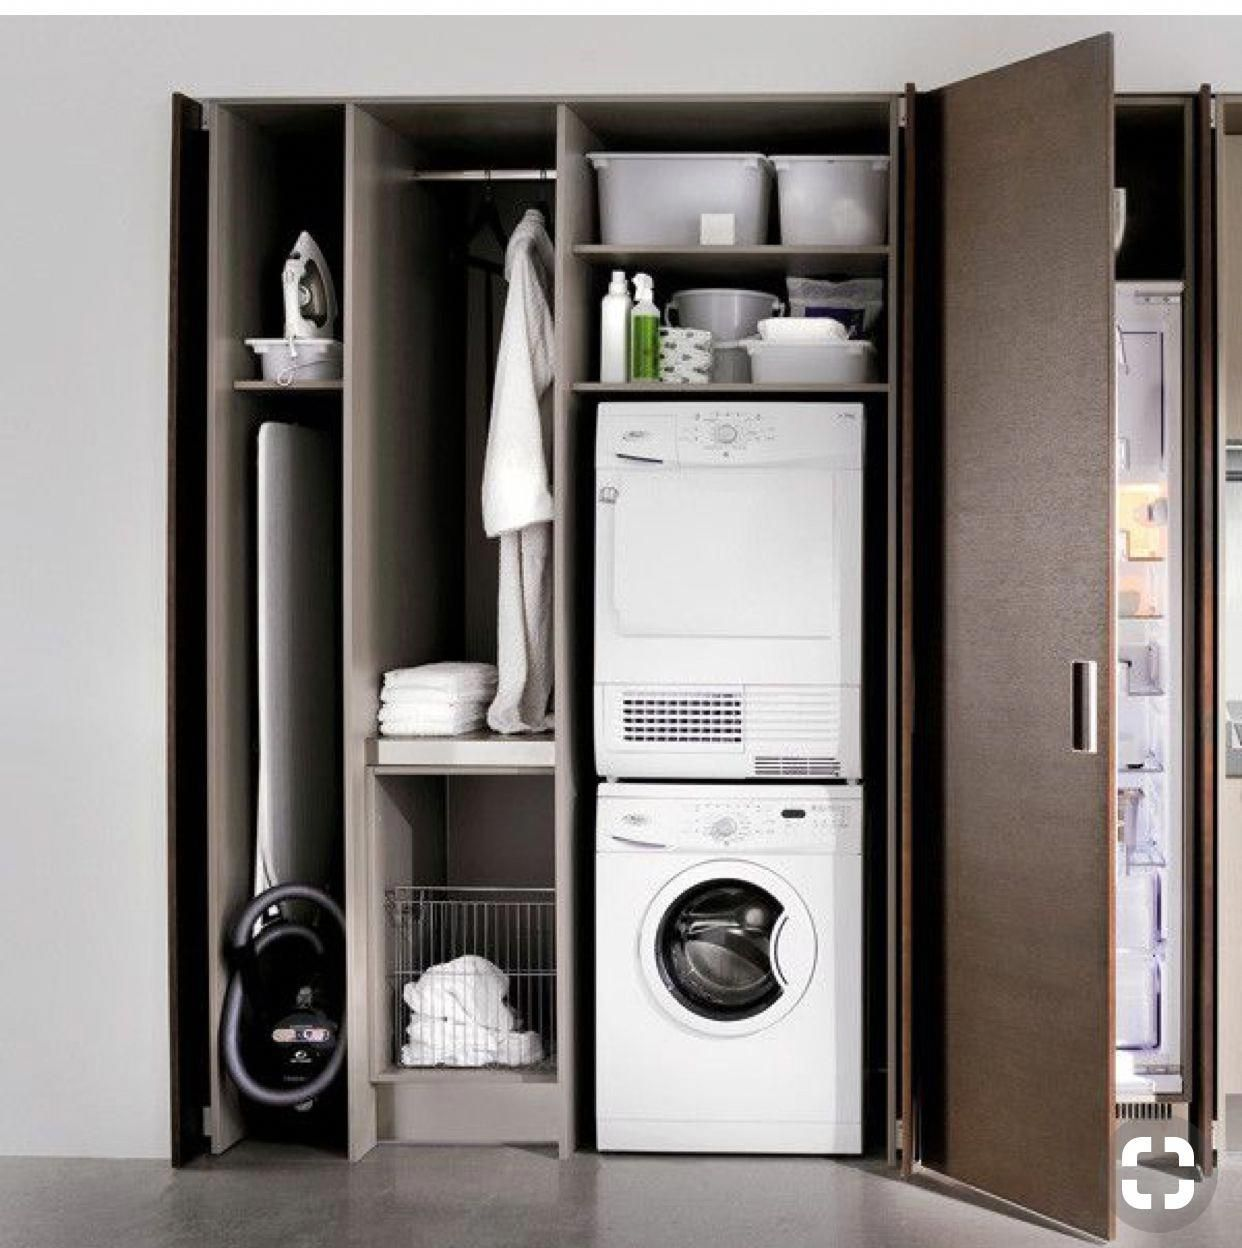 Discover More Details On Laundry Room Stackable Look Into Our